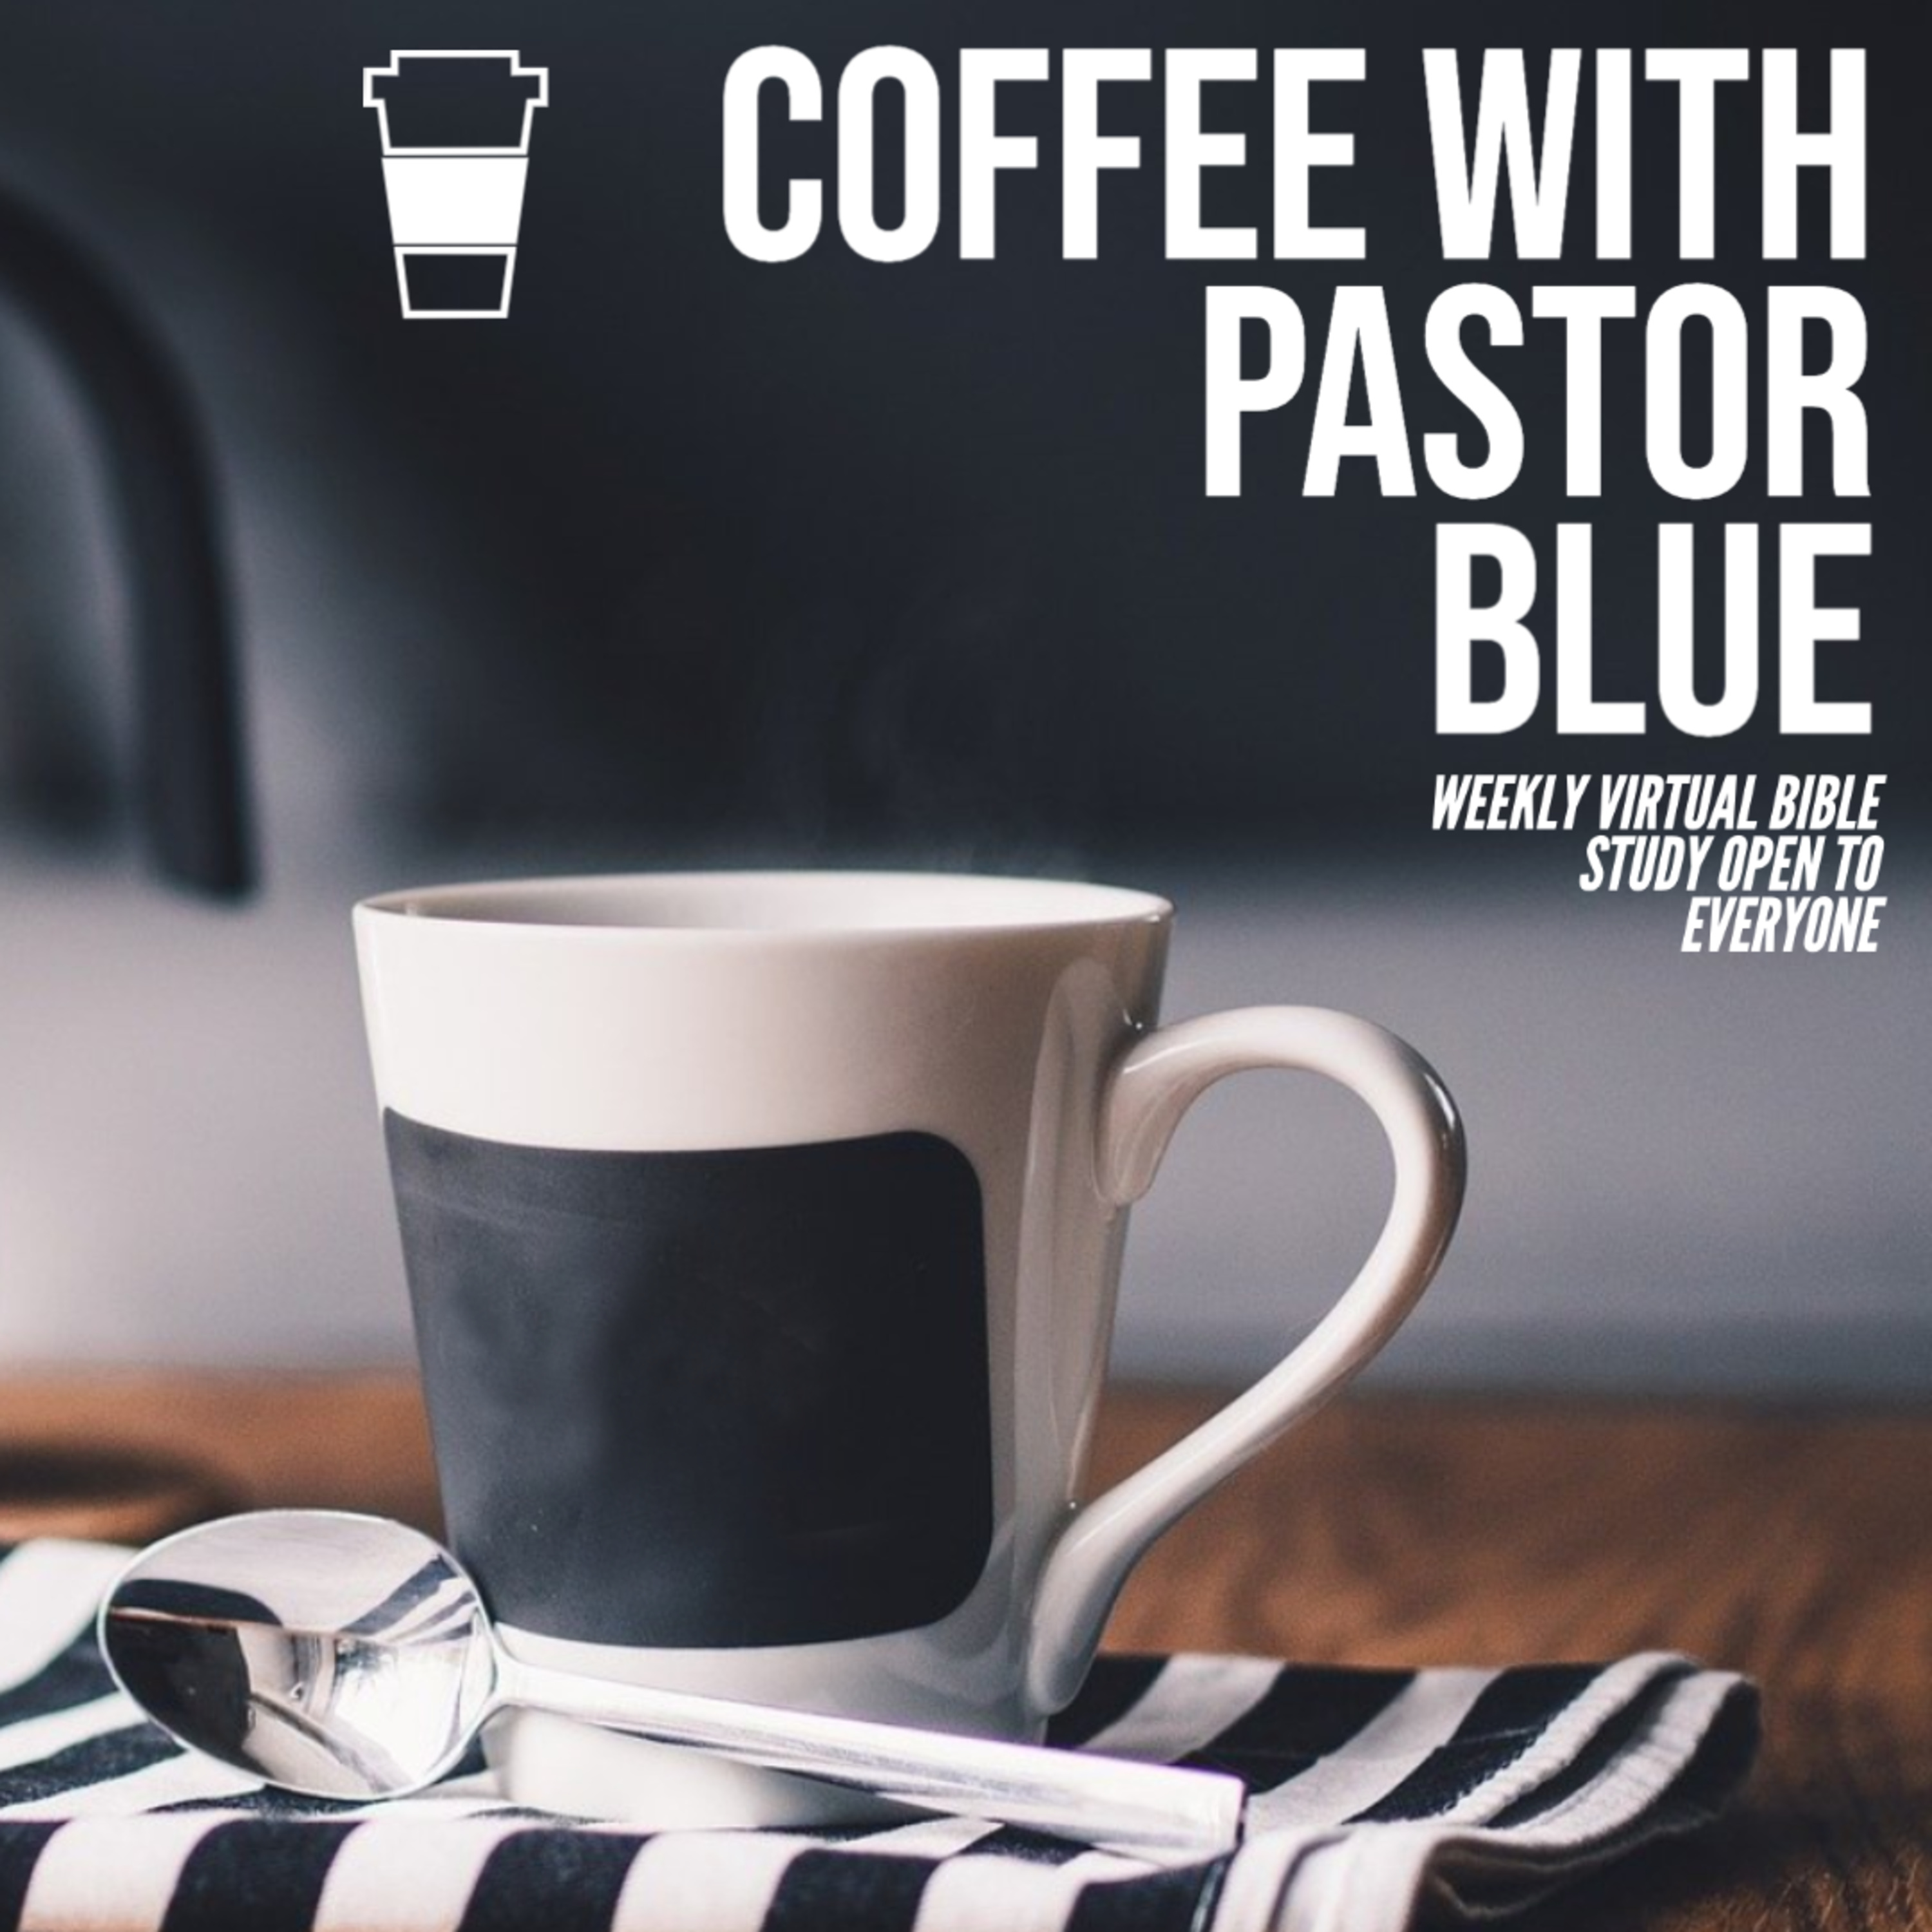 Coffee with the Pastor Episode 1